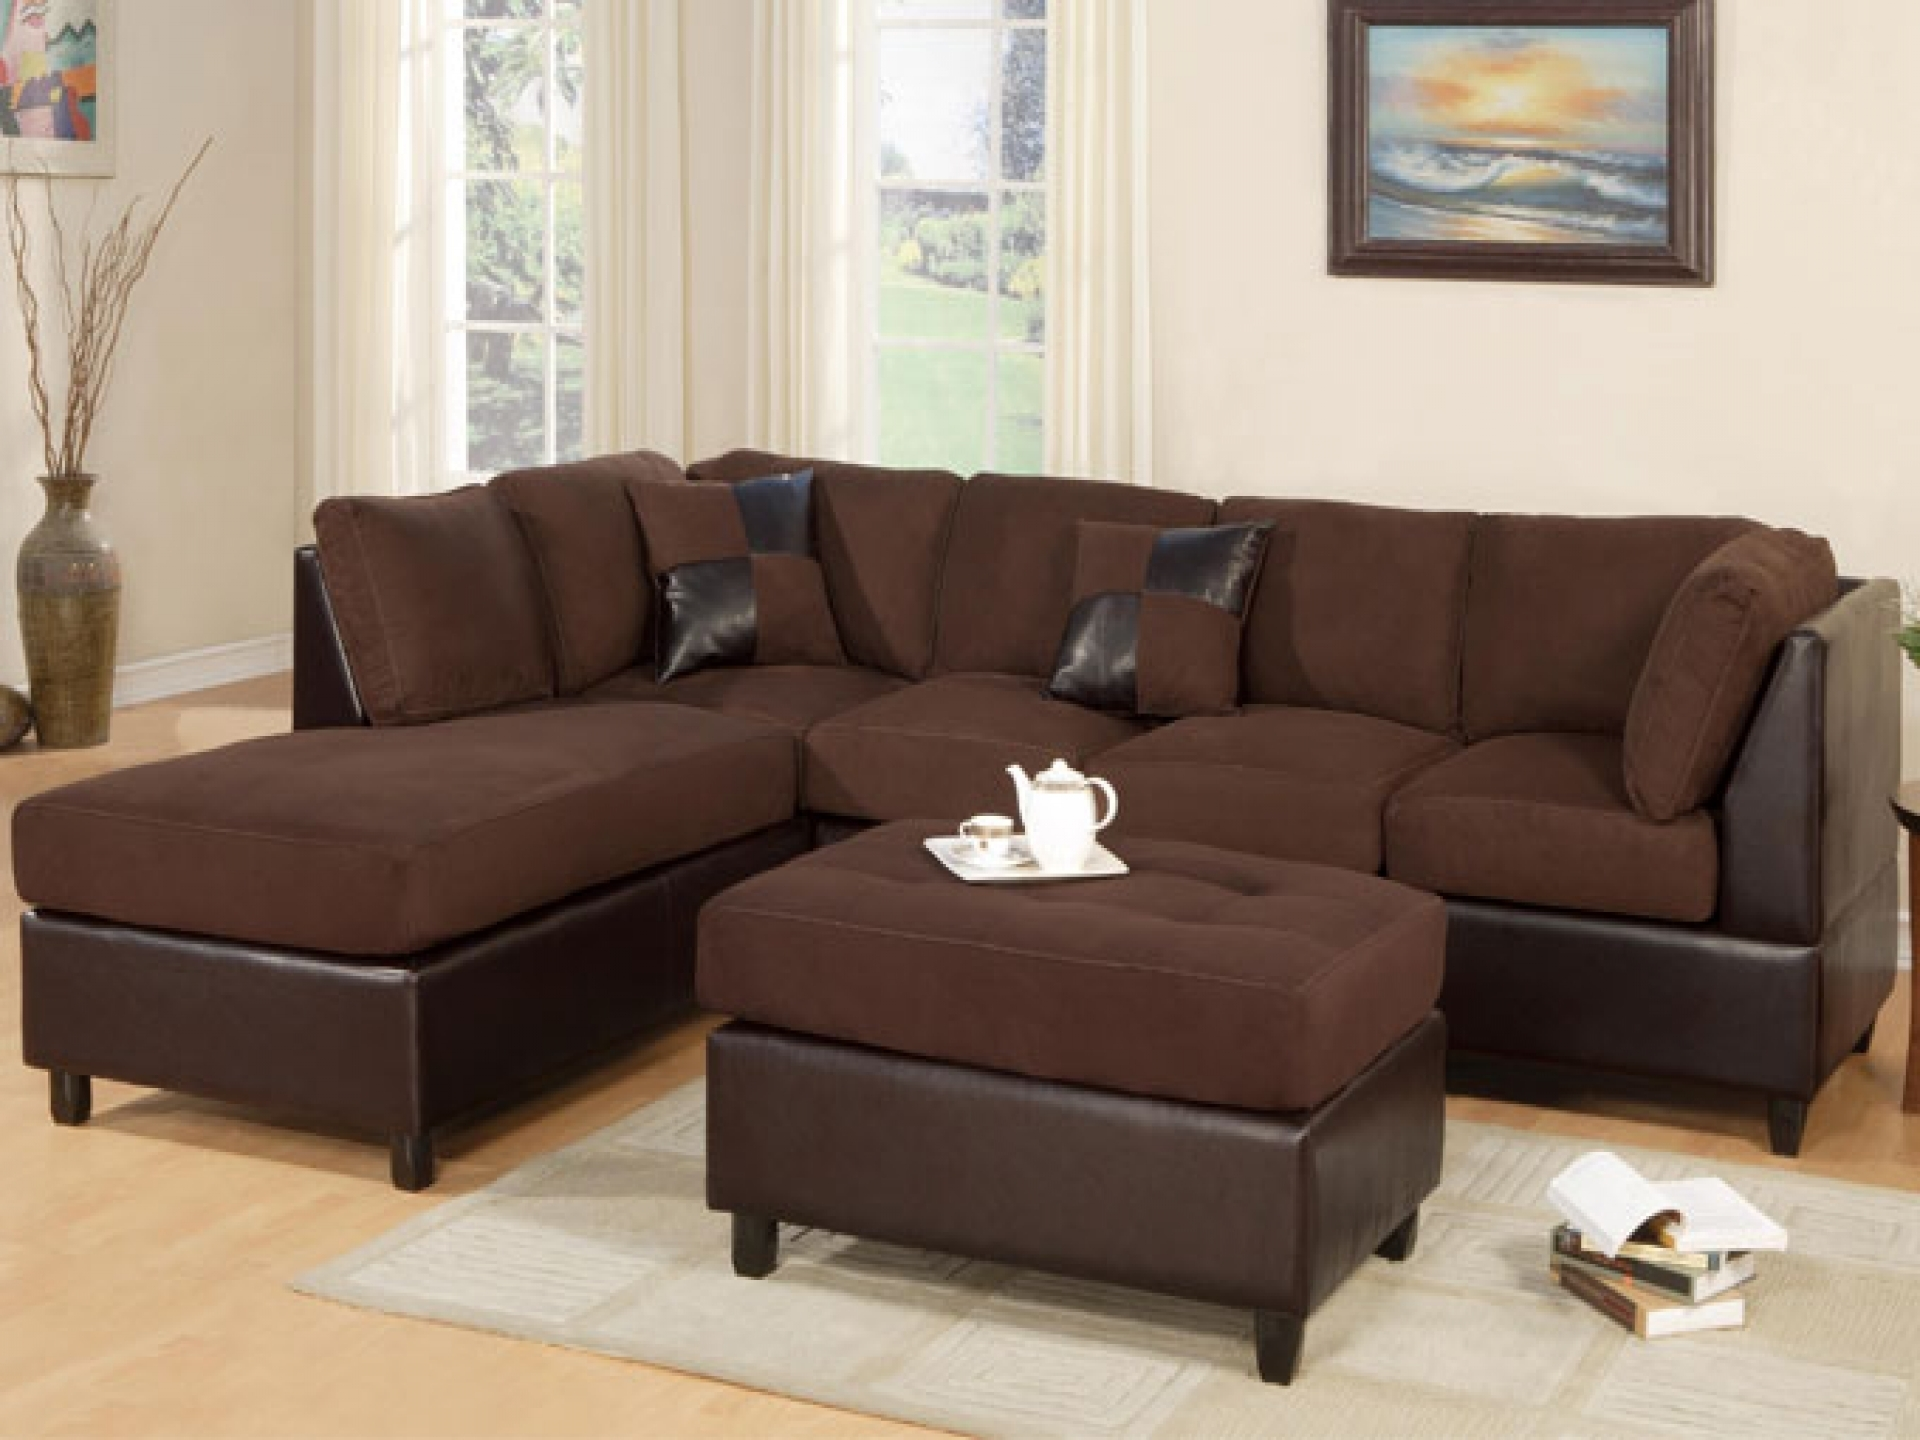 Cheap Living Room Sets Under American Freight Sectionals Sectional throughout Evansville In Sectional Sofas (Image 2 of 10)